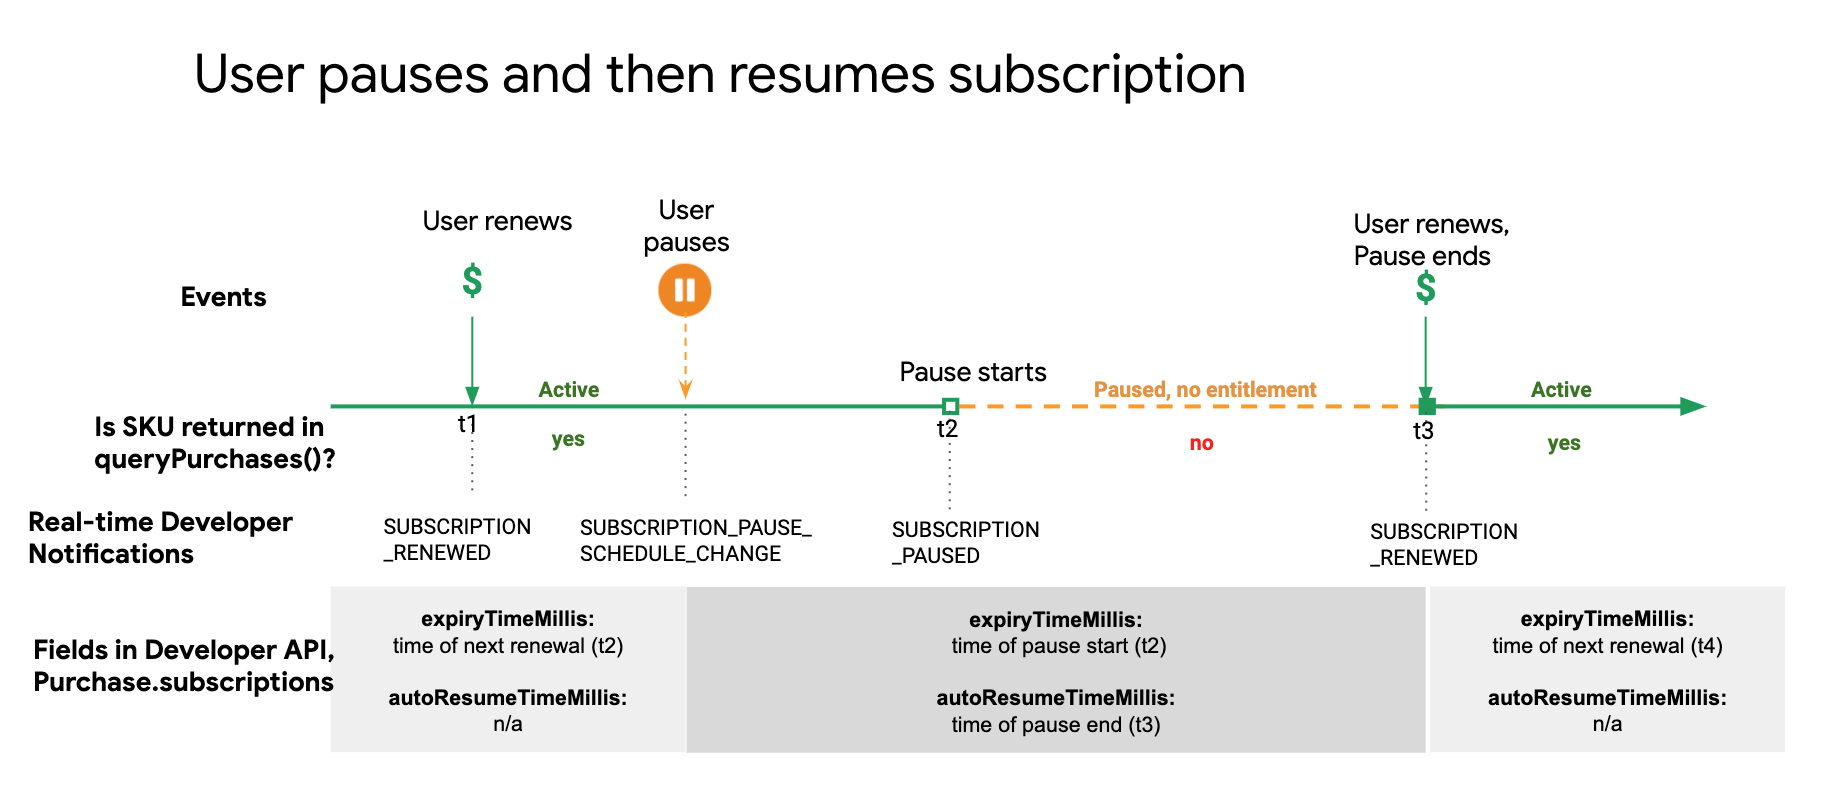 A user pauses and then resumes their subscription